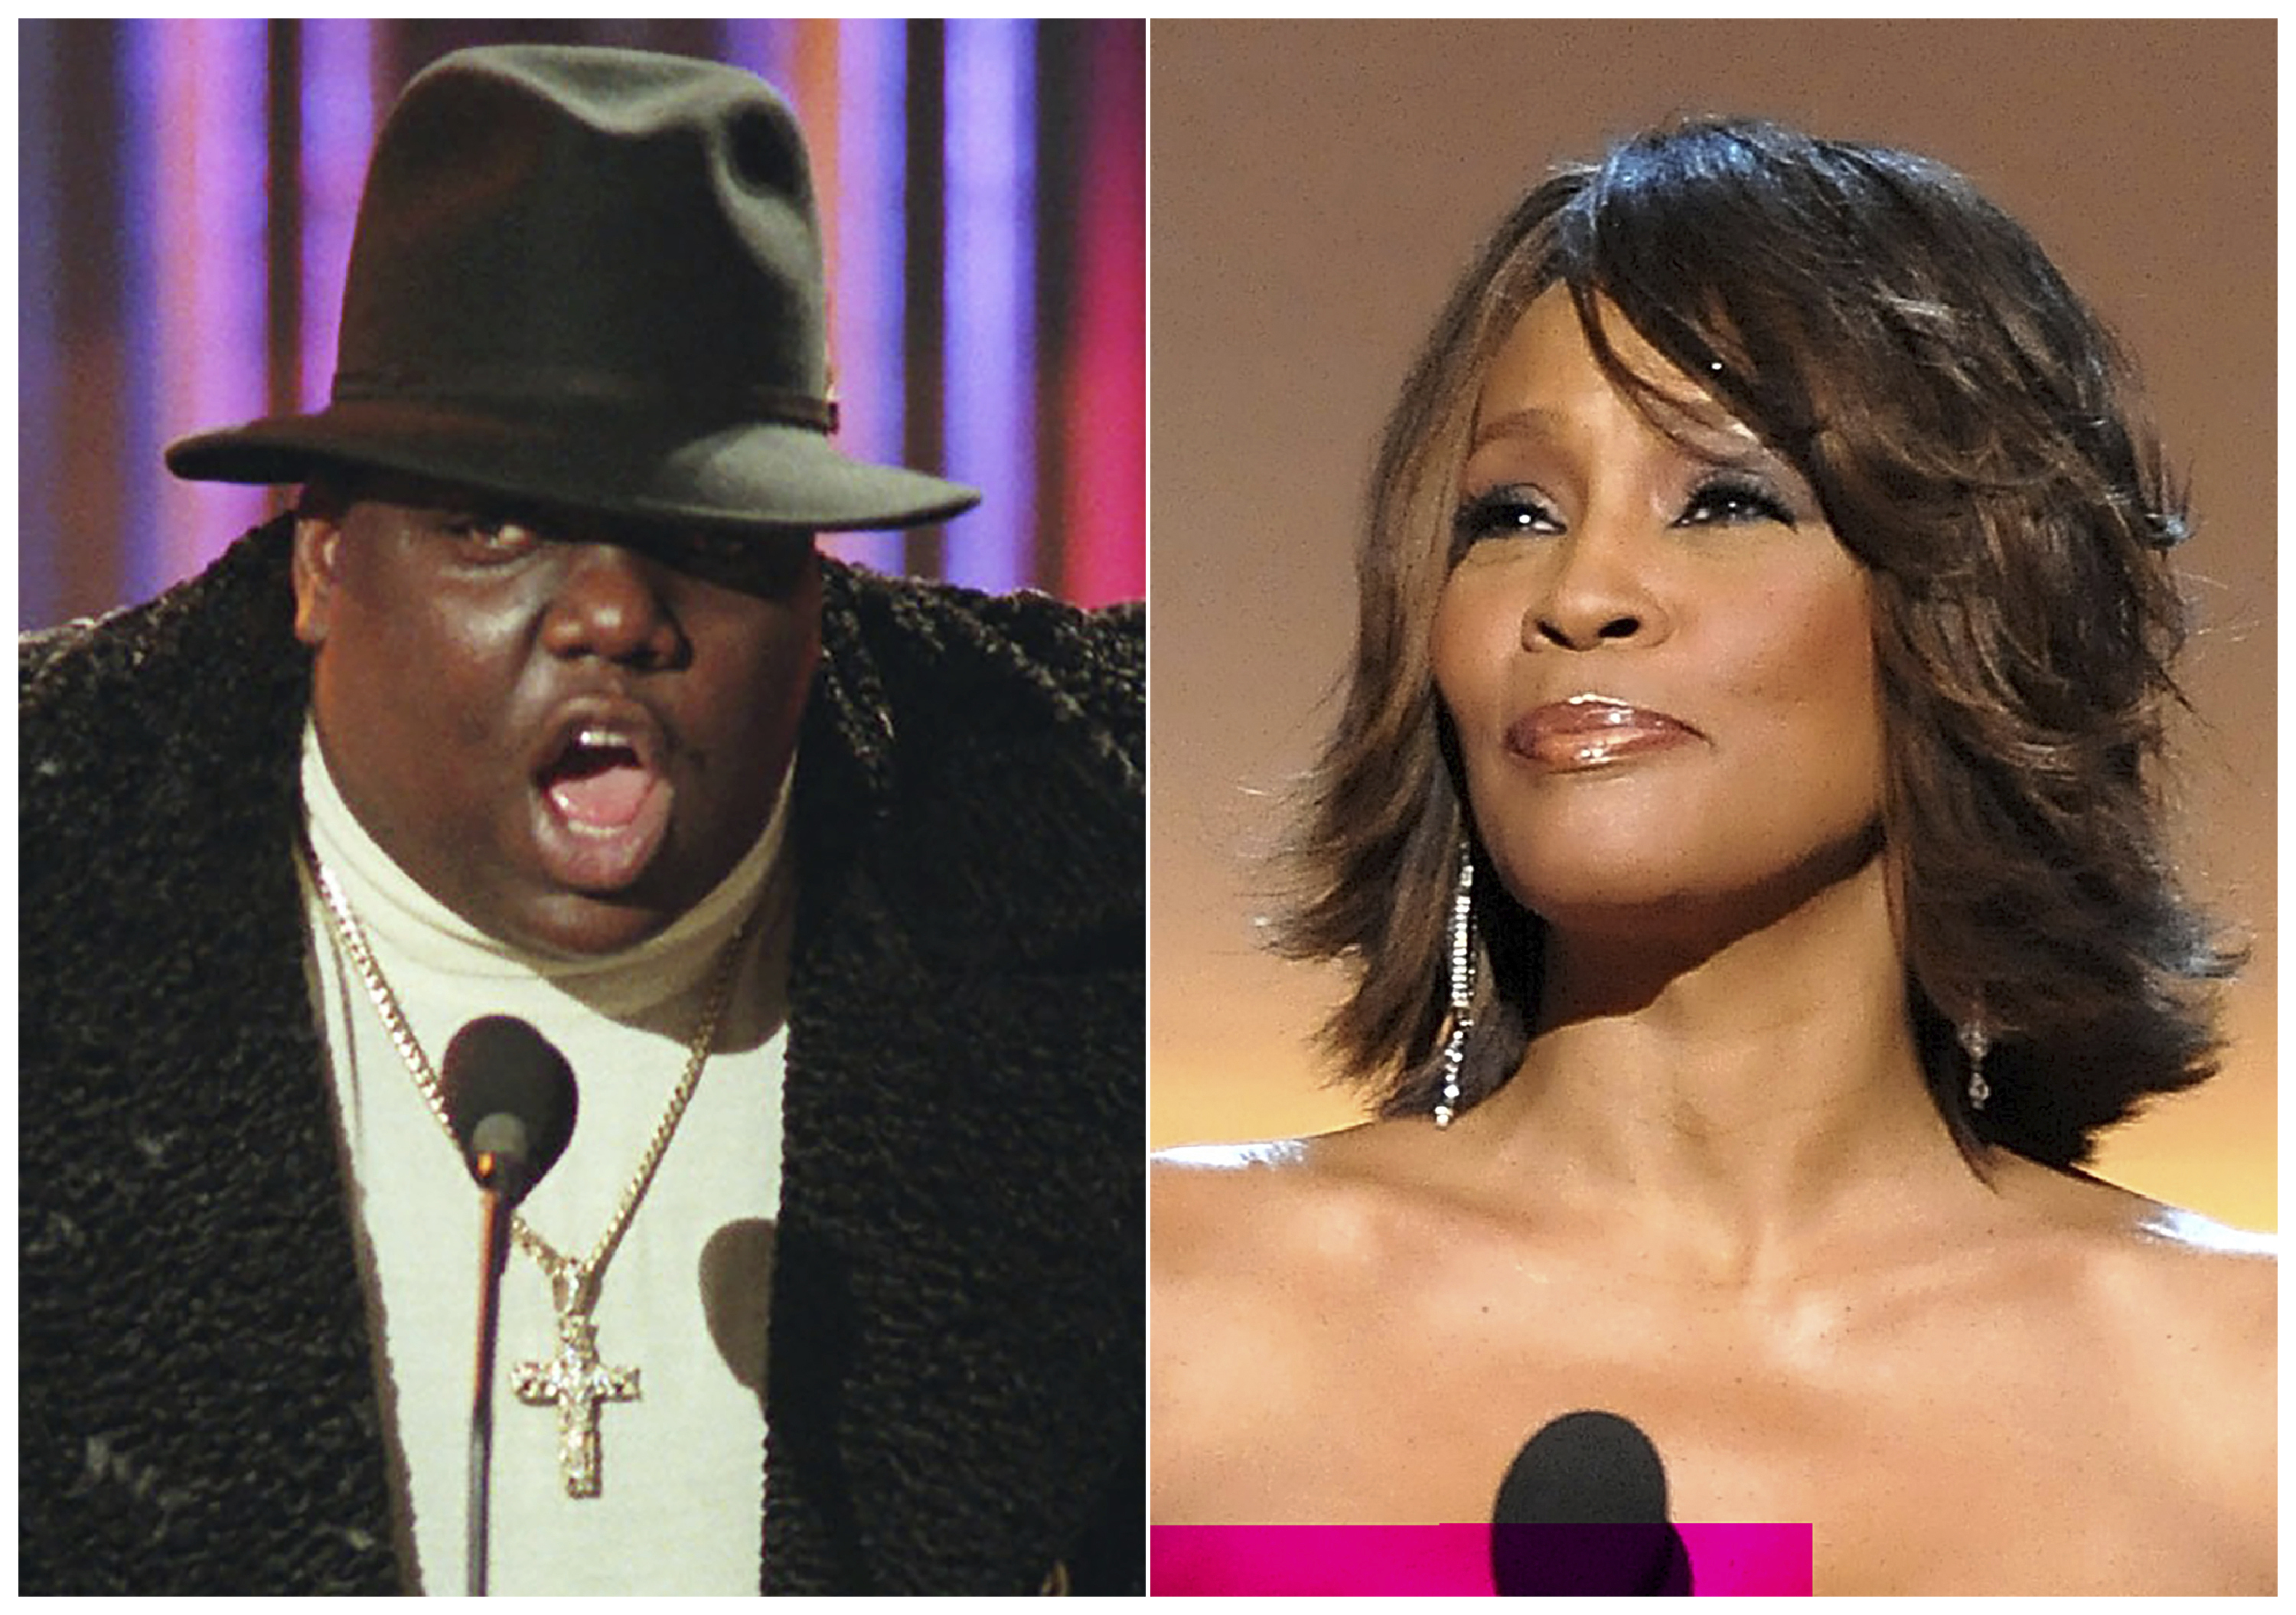 Notorious B.I.G. and Whitney Houston are among the 16 acts nominated for the Rock and Roll Hall of Fame's 2020 class.